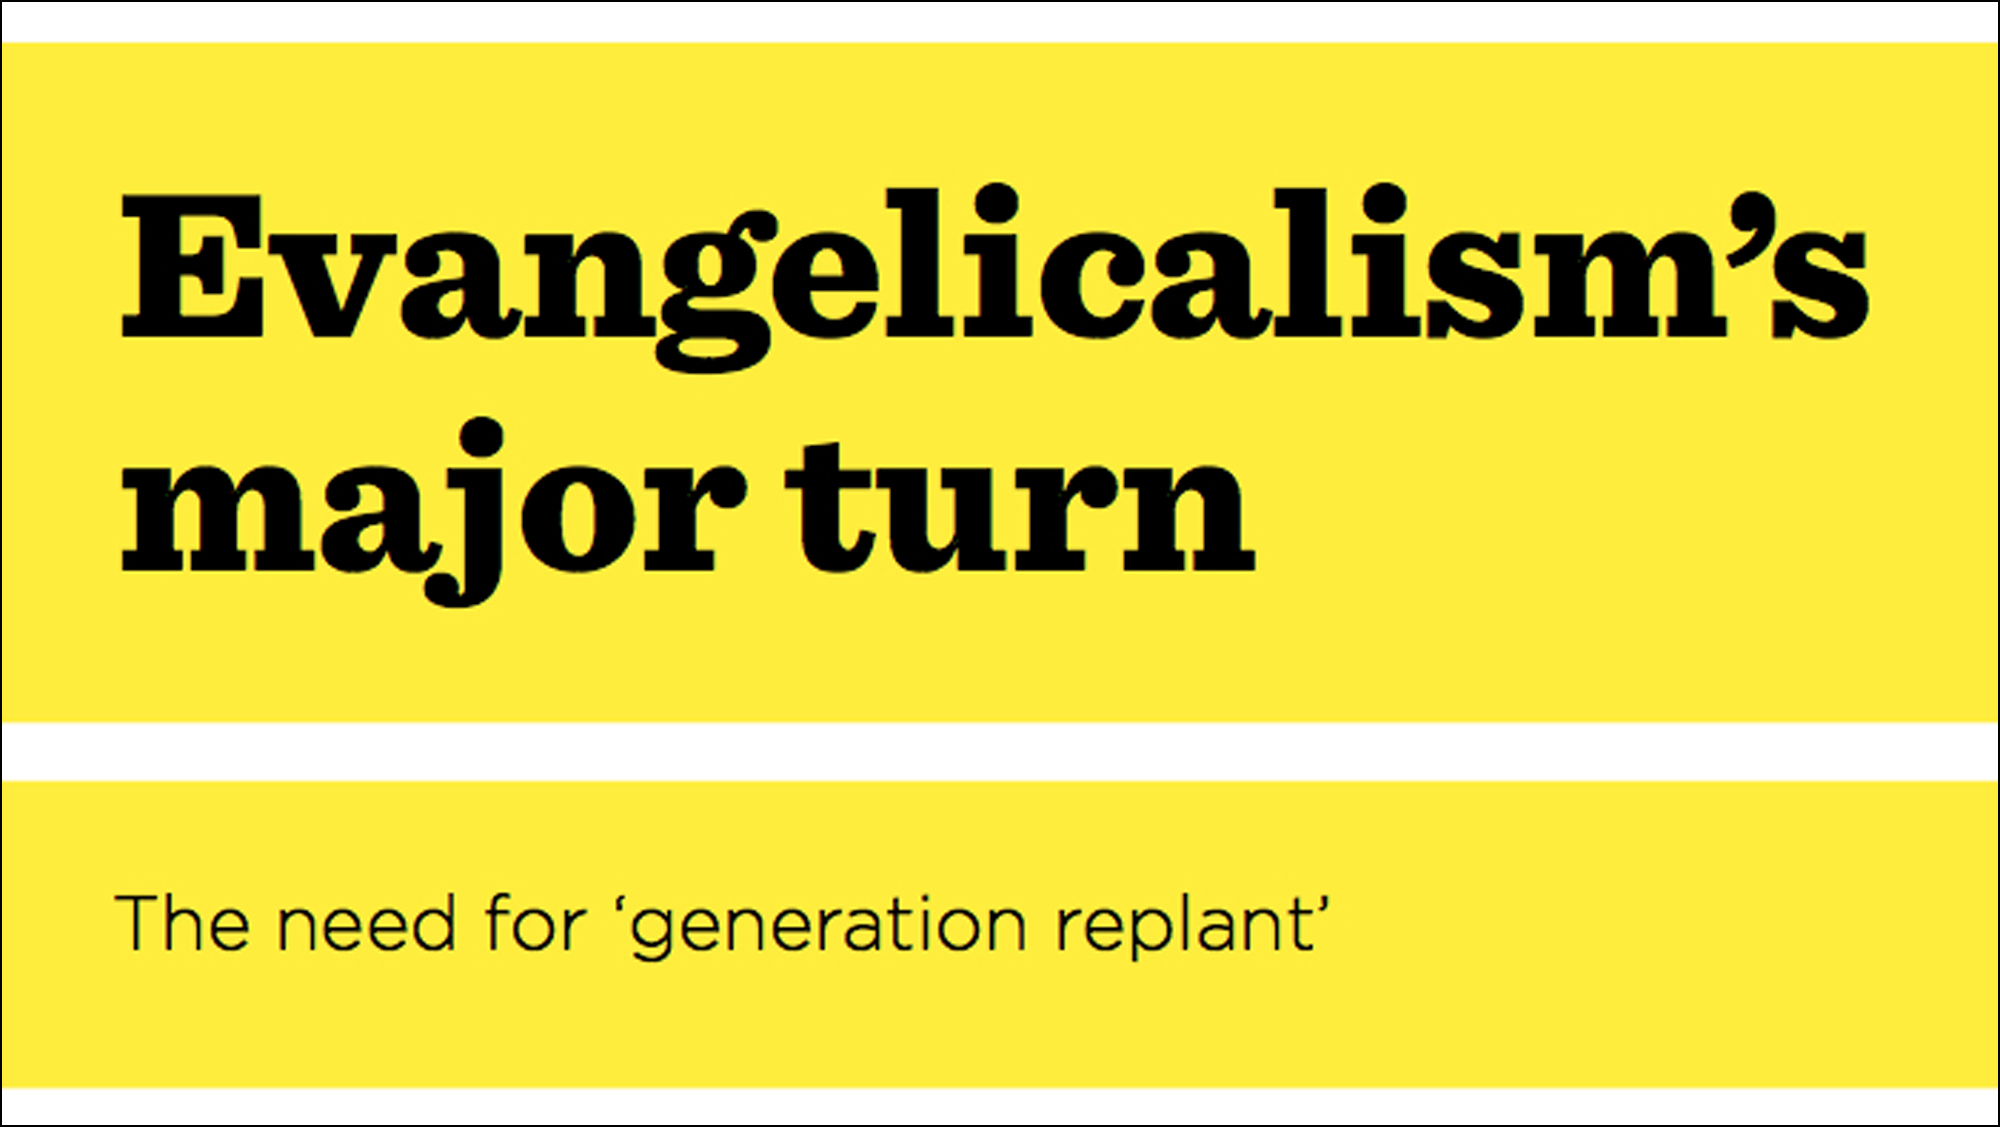 Evangelicalism's major turn: the need for 'generation replant'